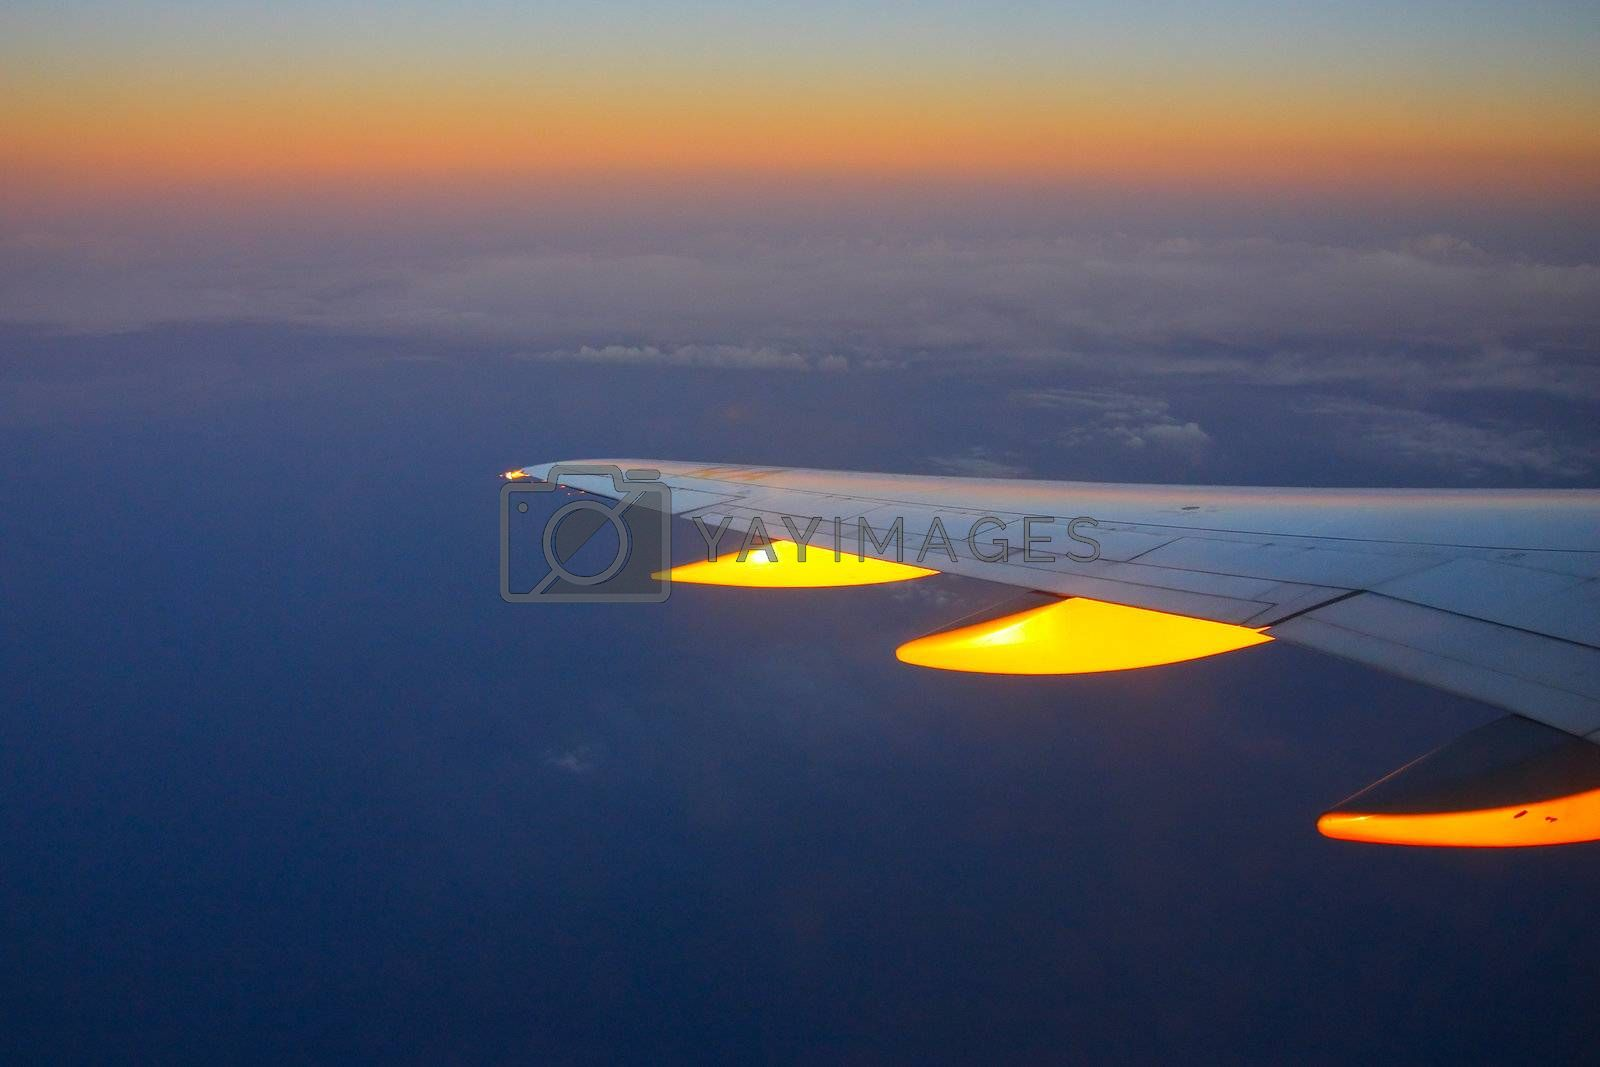 Wing of the plane on a background of gold clouds and sunset